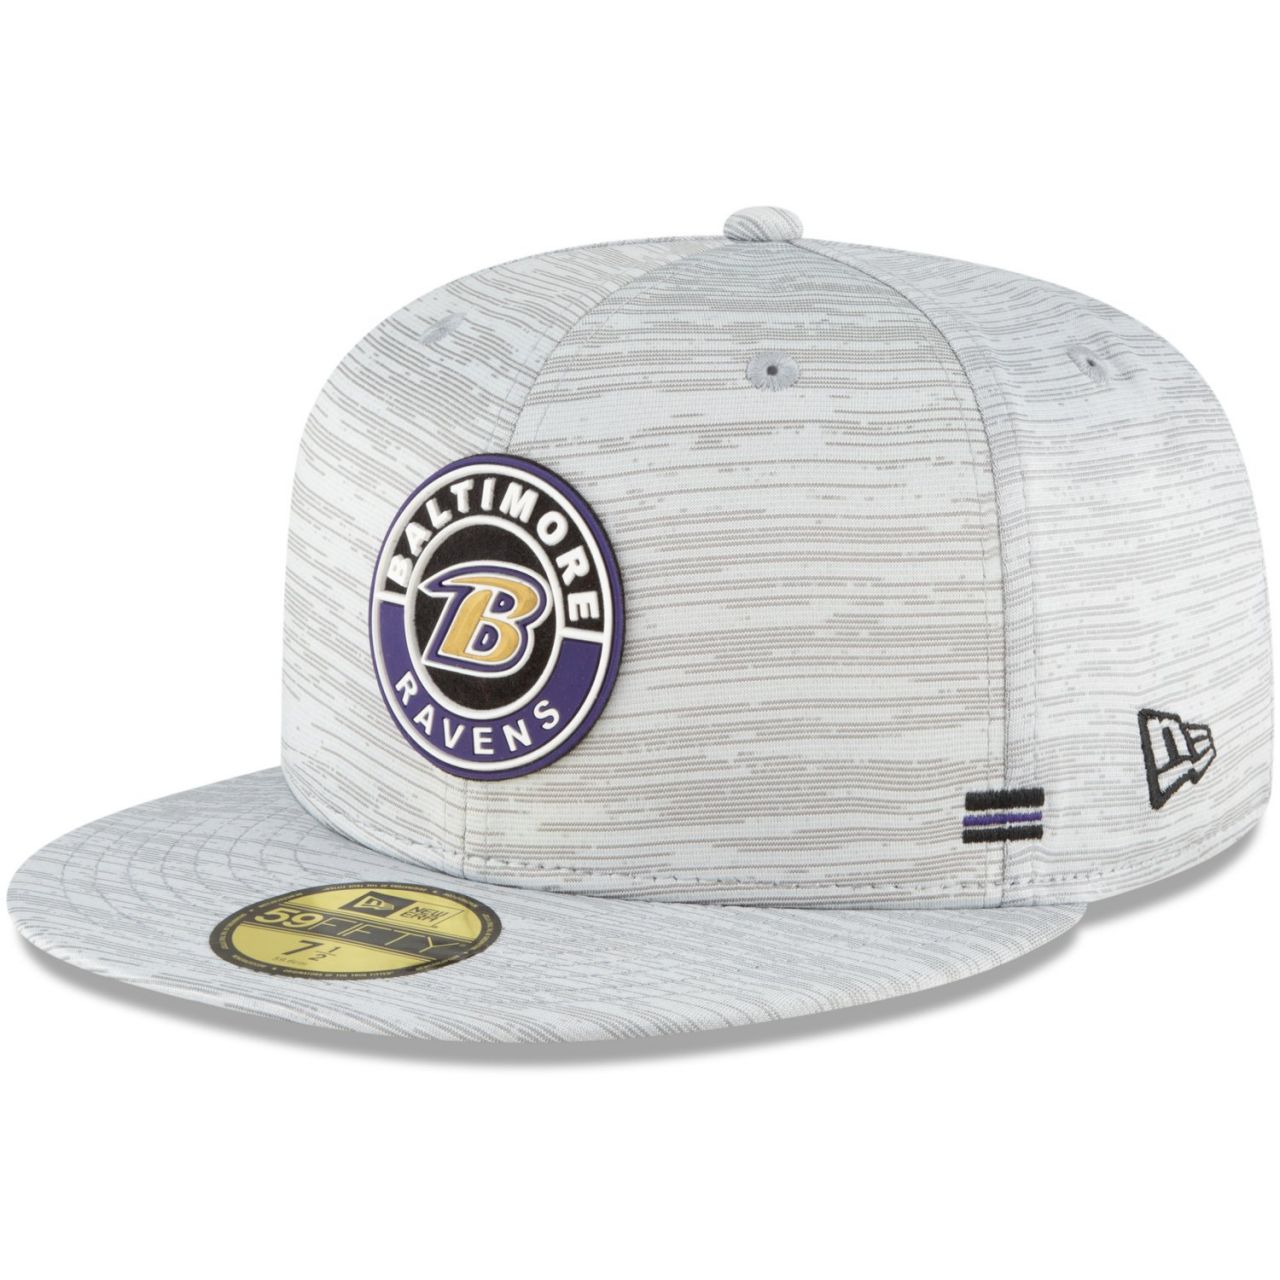 amfoo - New Era 59Fifty Fitted Cap - SIDELINE 2020 Baltimore Ravens